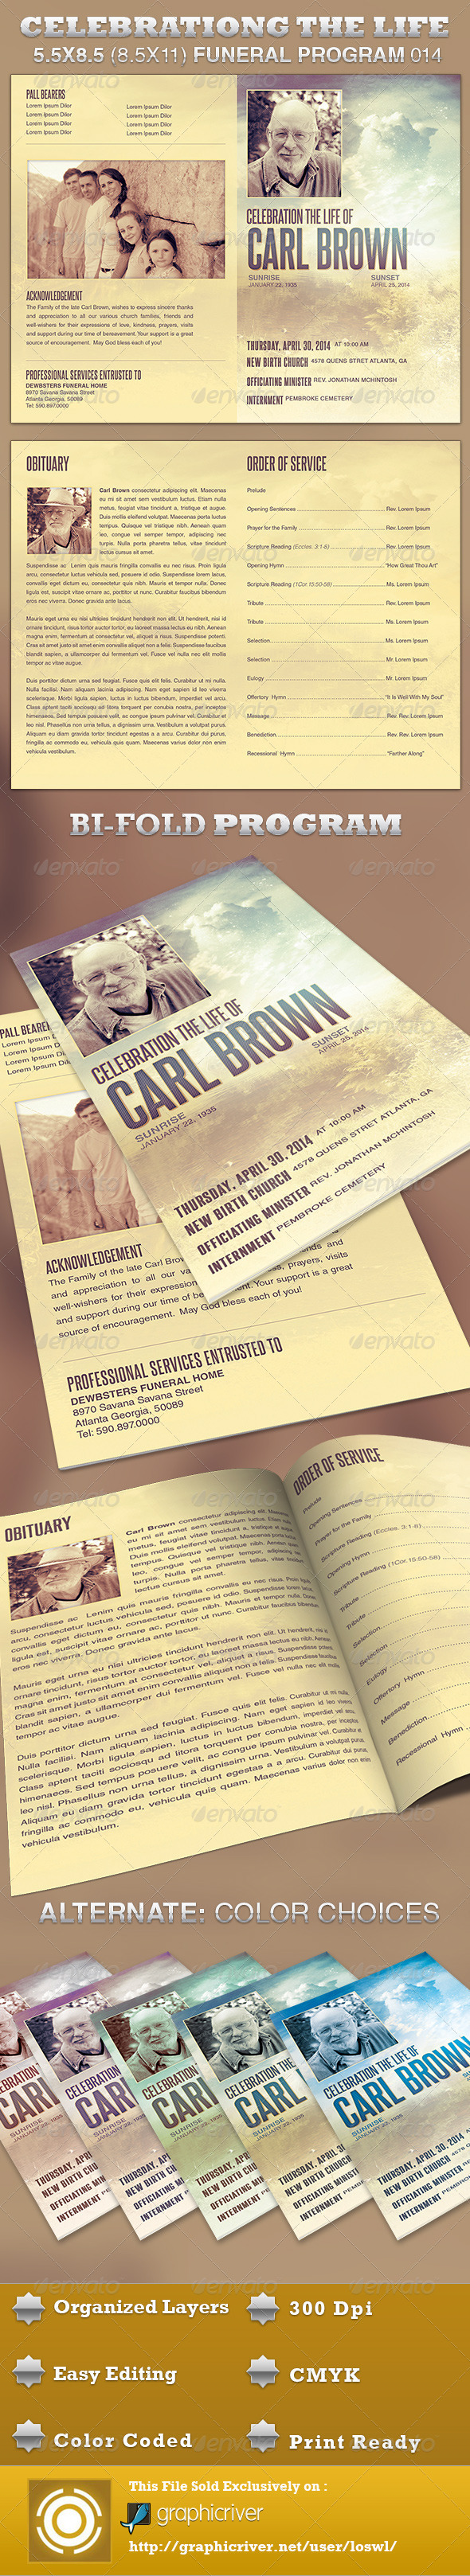 GraphicRiver Celebrating the Life Funeral Program Template 014 4392931